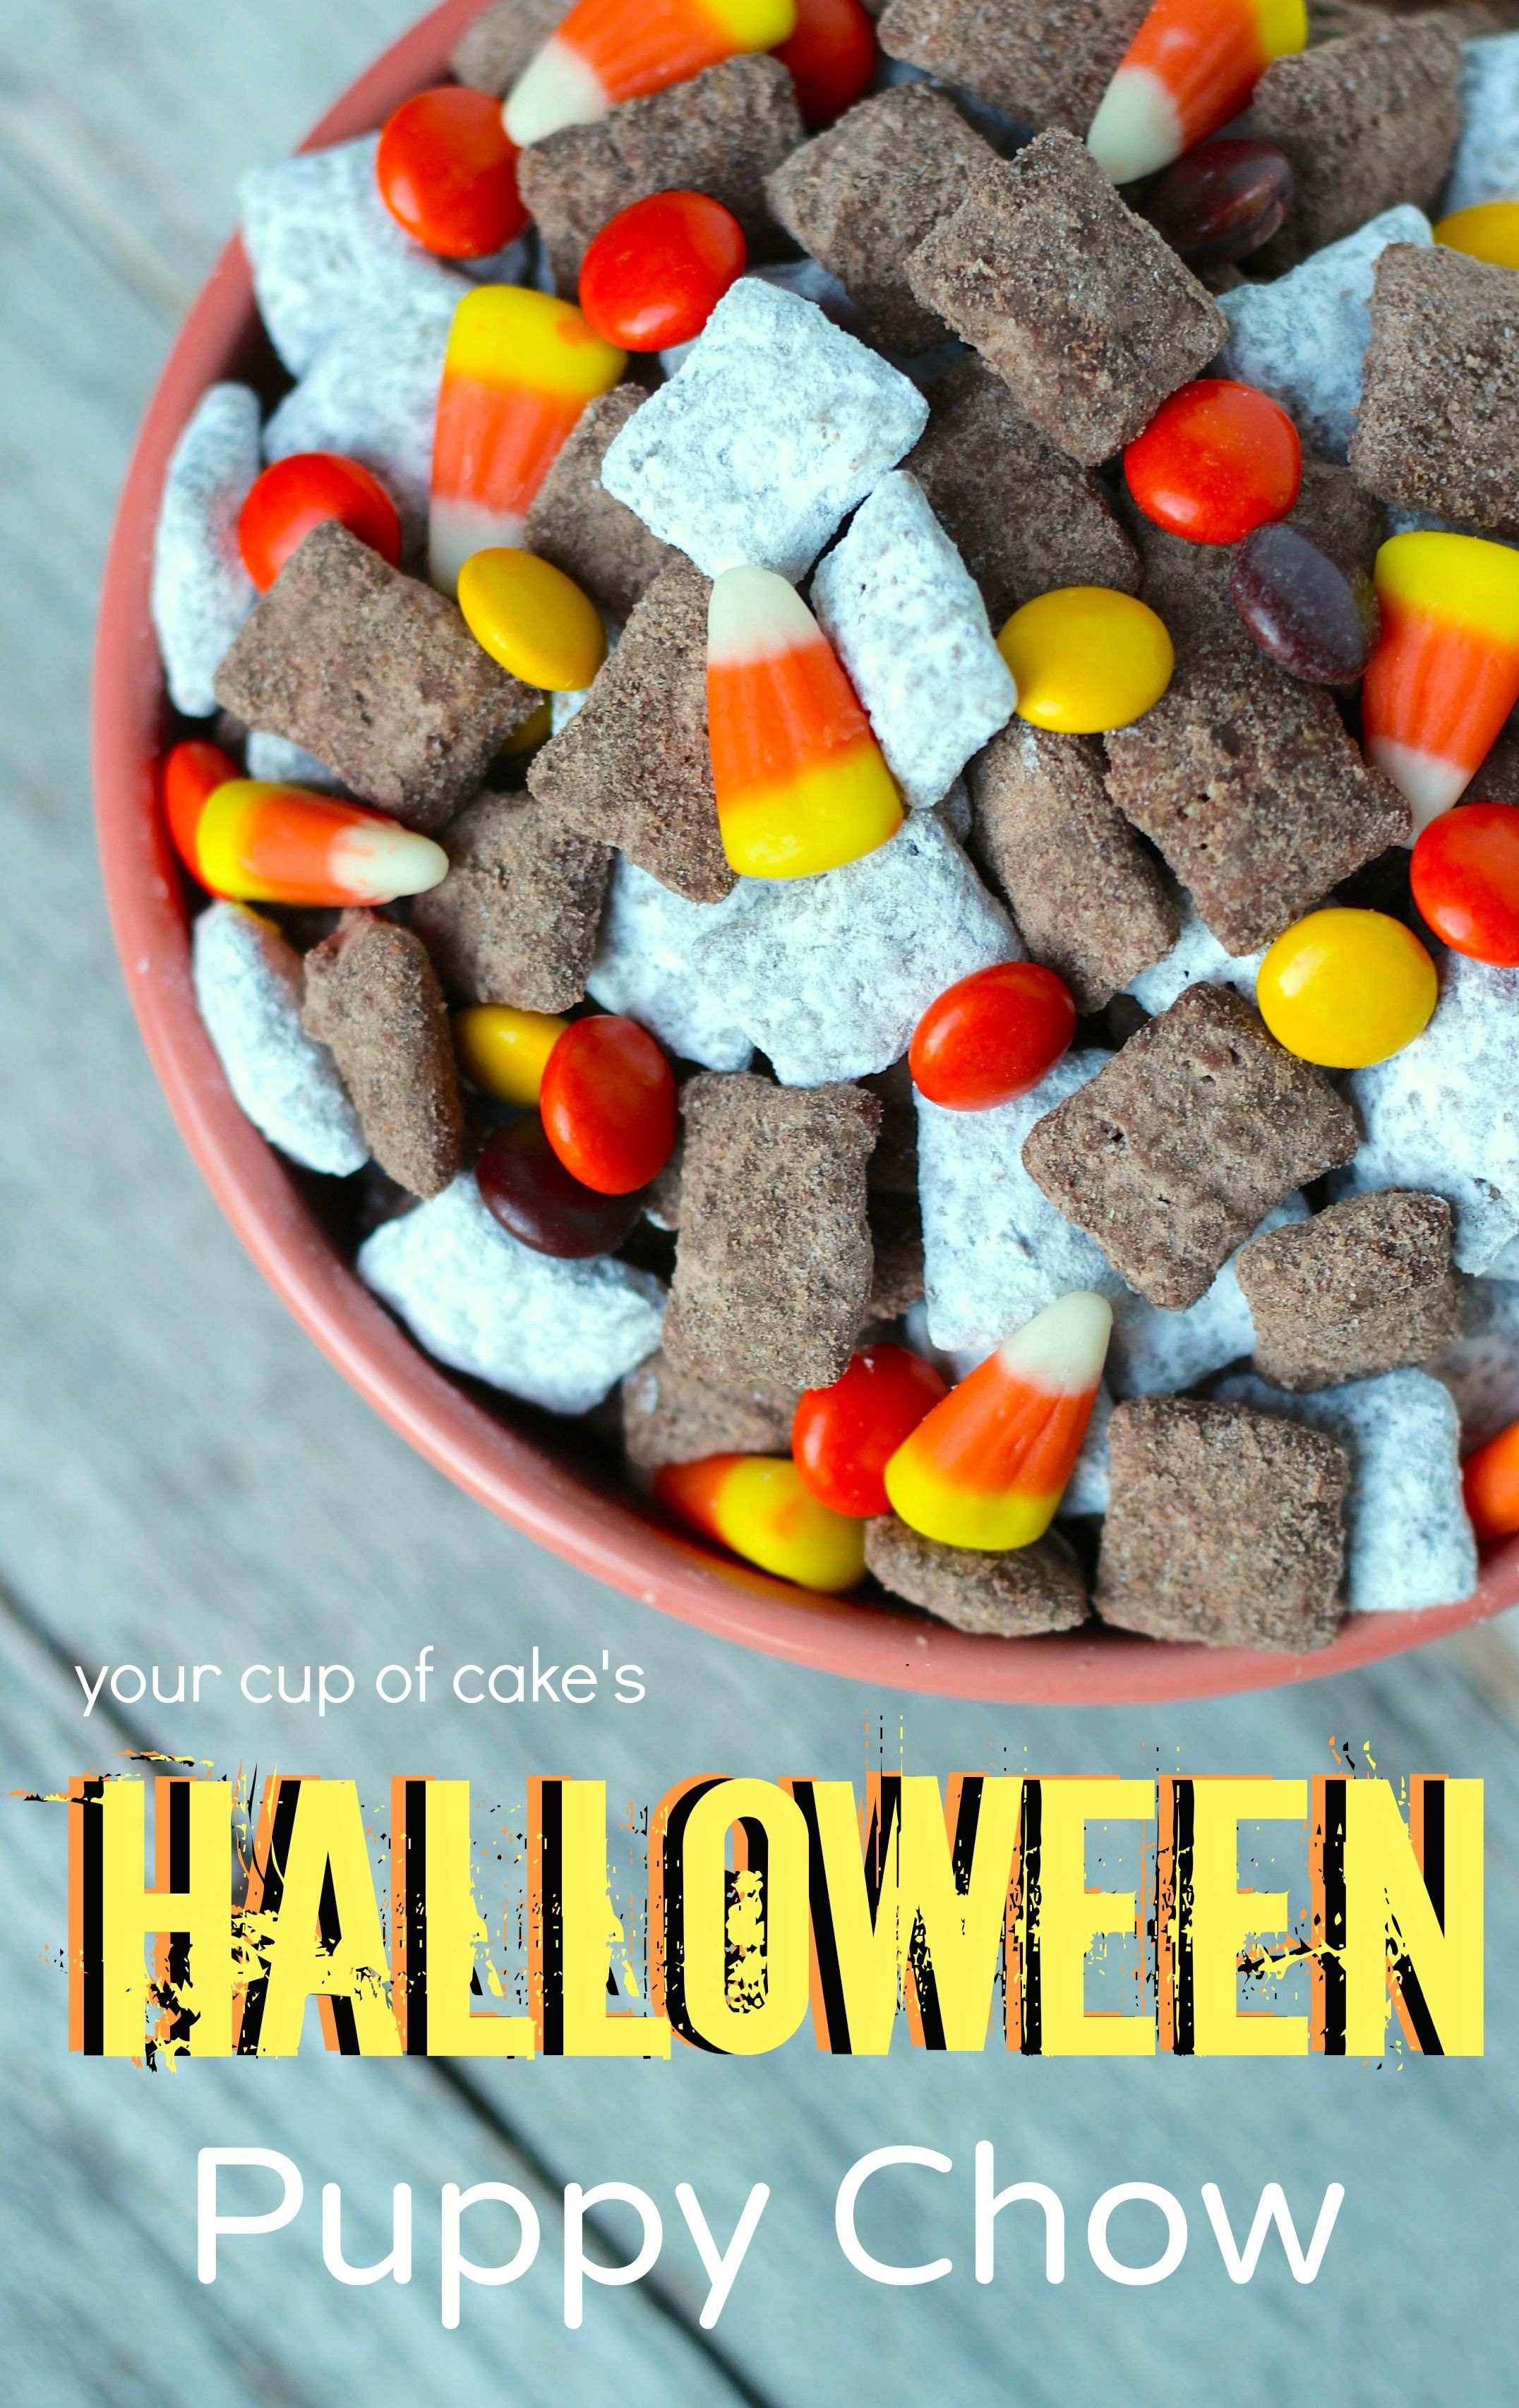 8 C Rice Cereal Squares Chex 1 1 2 C Chocolate Chips Or Melts 1 2 C Peanut Butter Creamy You Can Omi Puppy Chow Recipes Halloween Puppy Halloween Treats